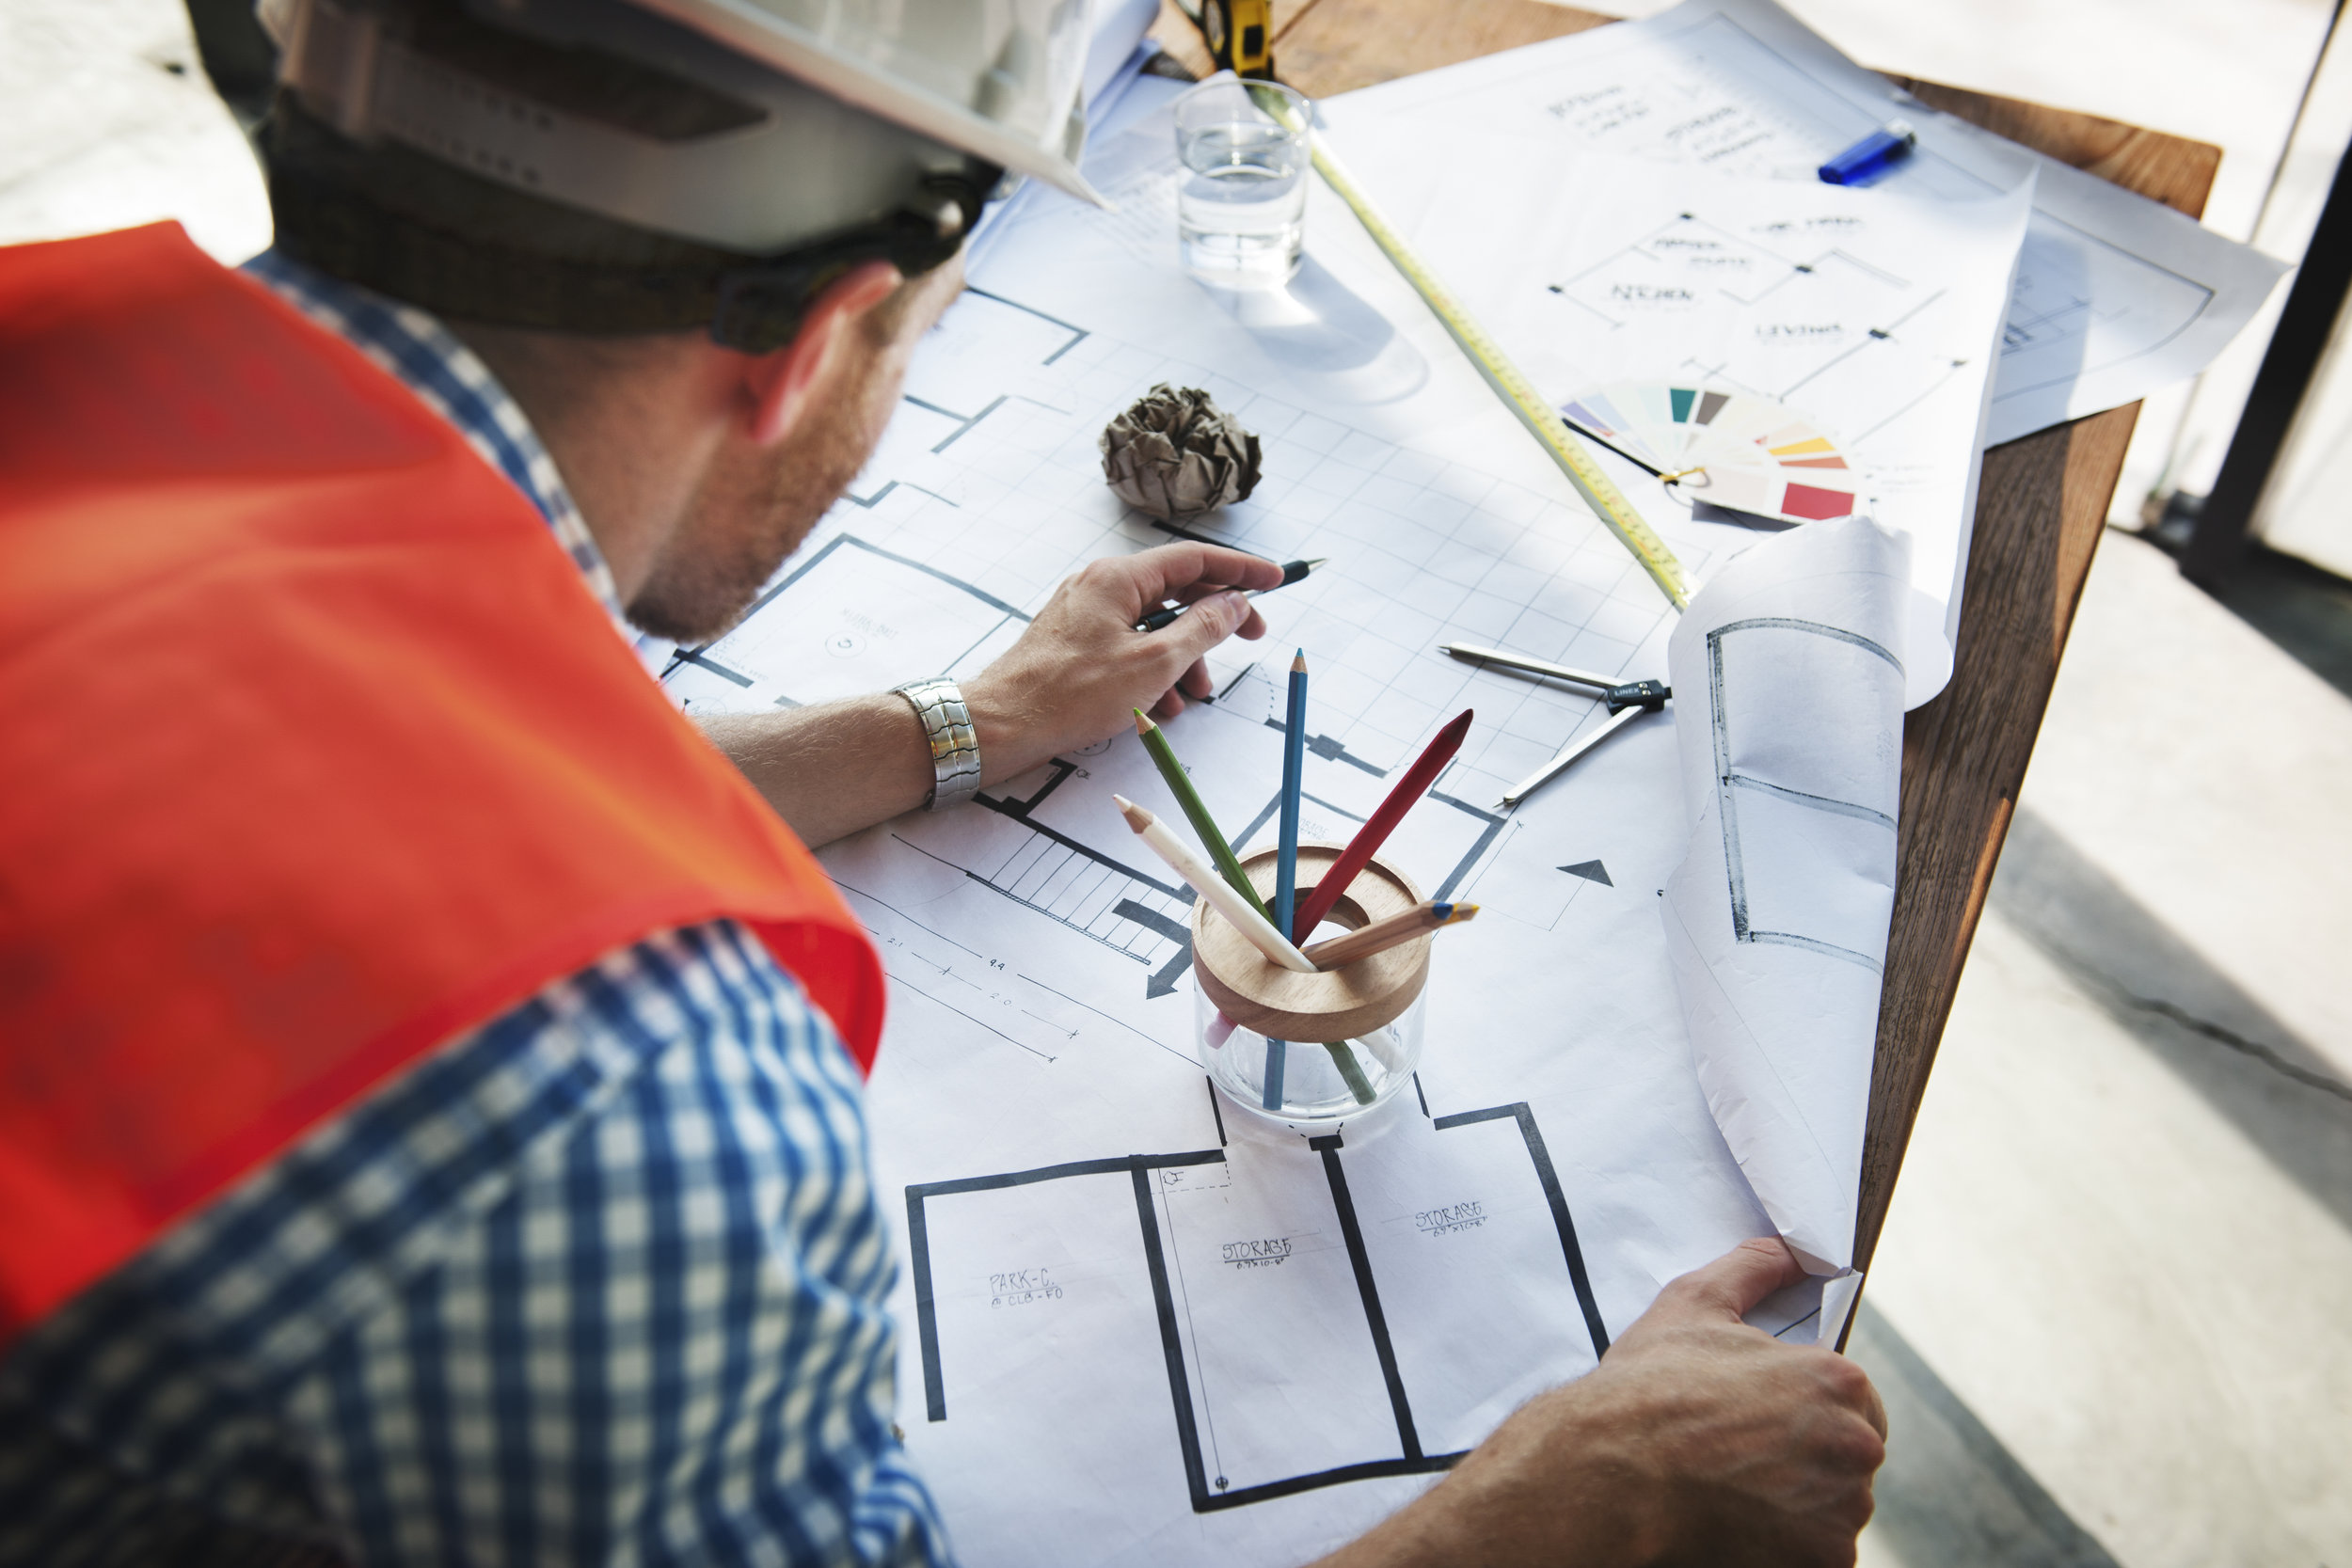 Building Management - Timing is vital throughout building and why we produce team schedules and invest in our relationship with contractors. Comunicacion is the key to our success.